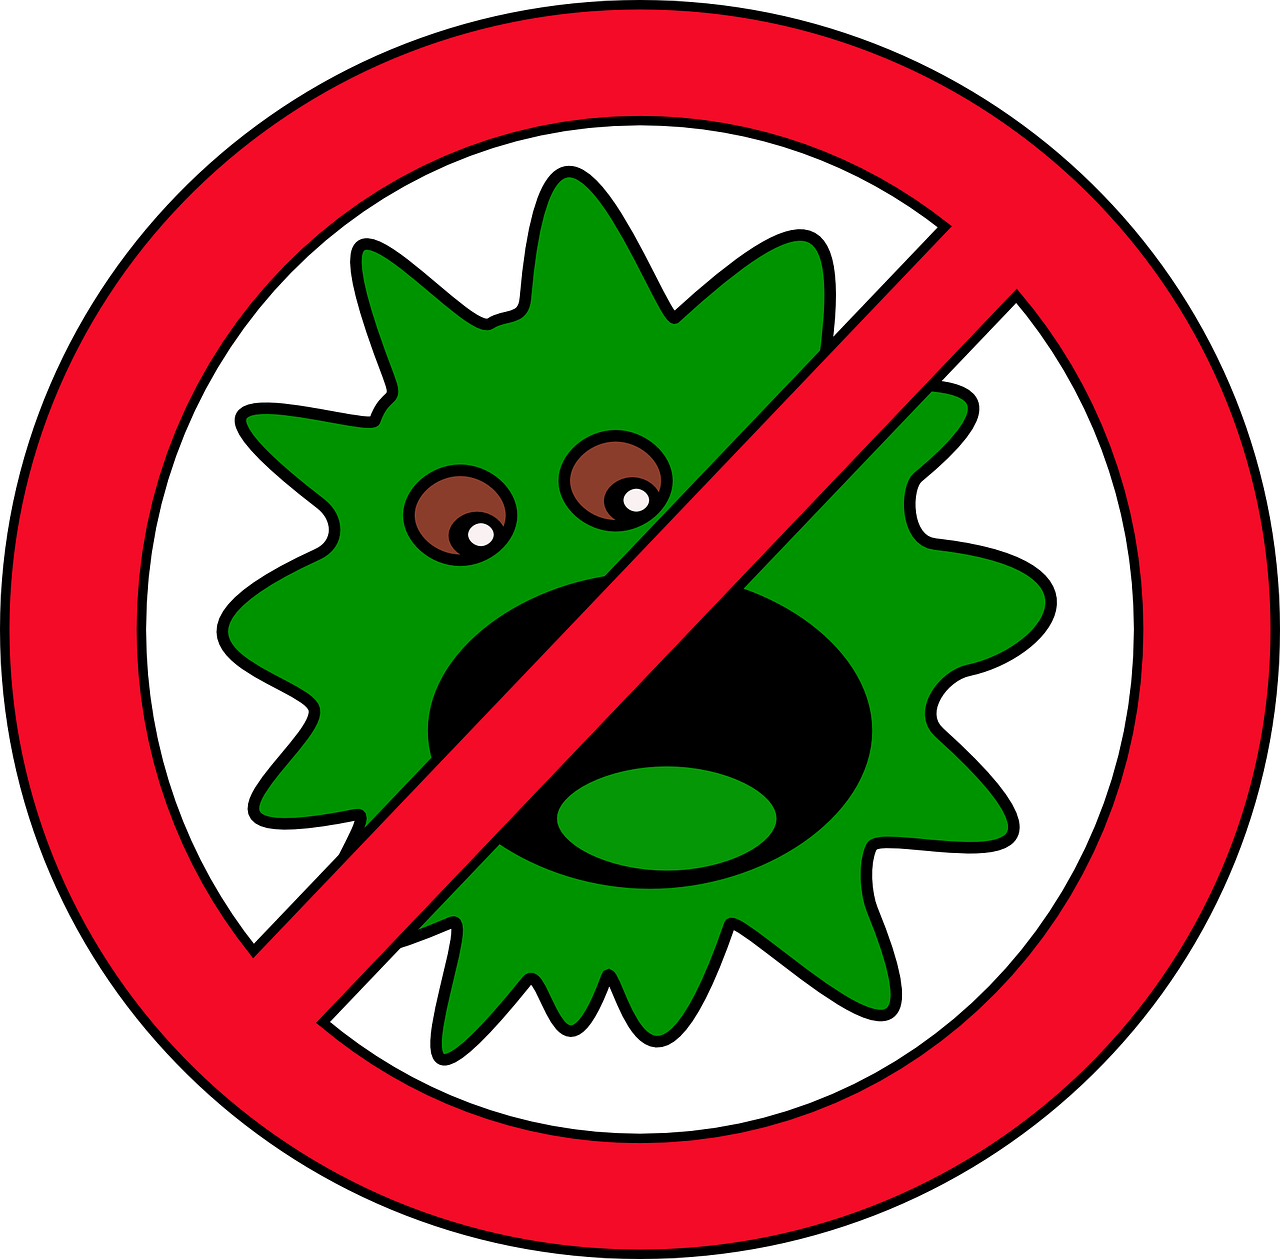 germ virus bug free photo